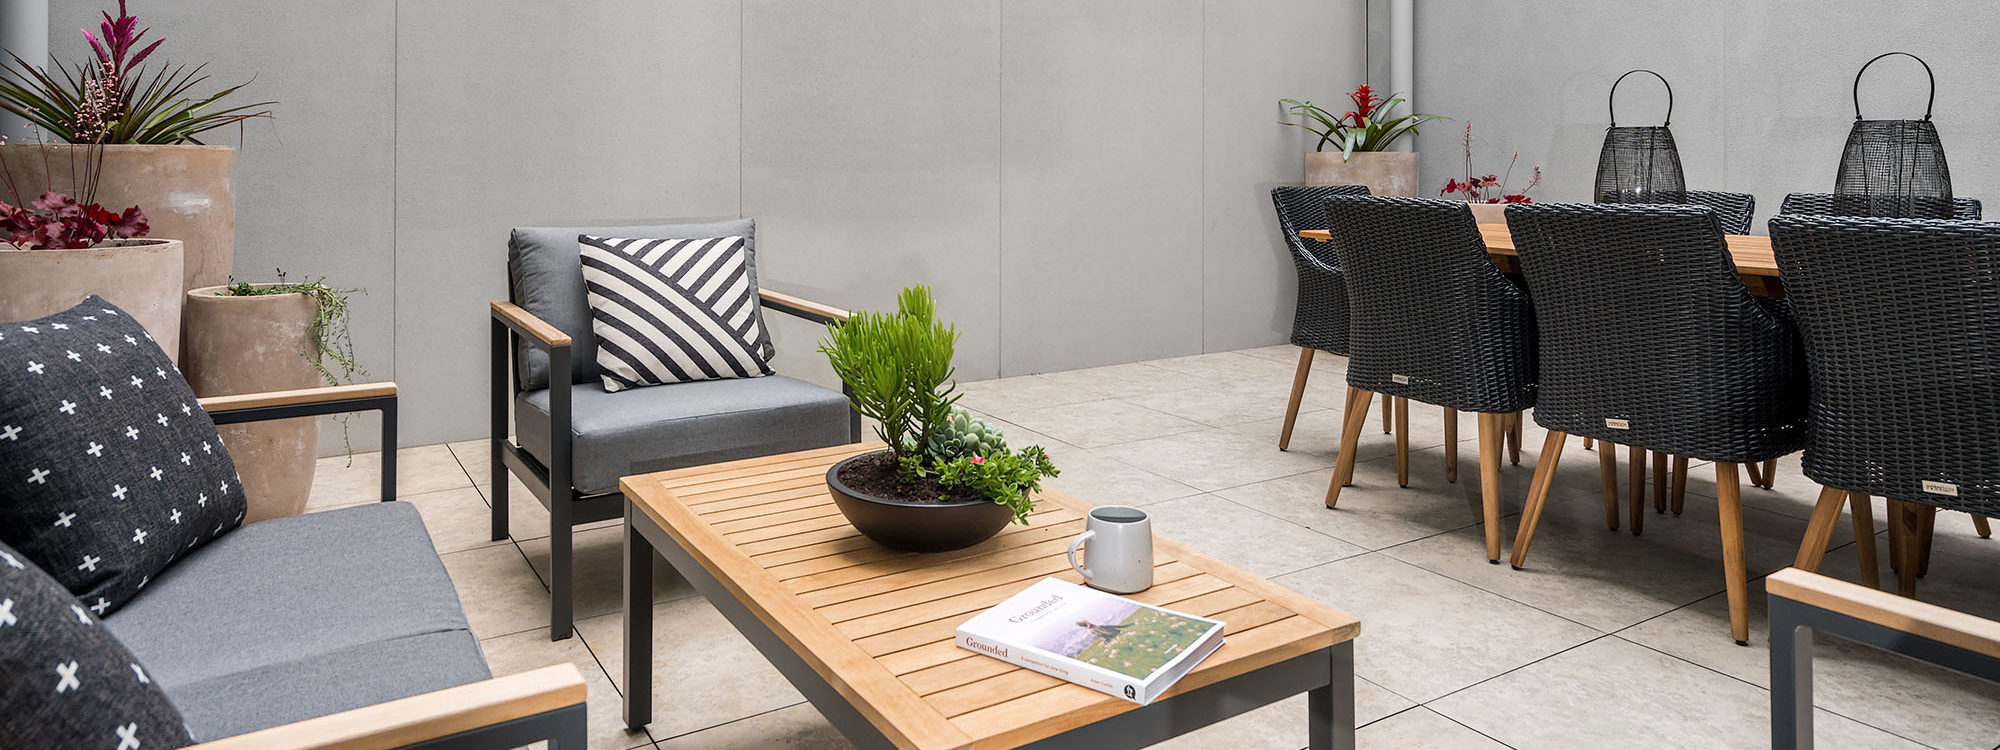 Axel Apartments The Faircroft - Glen Iris - Outdoor area d